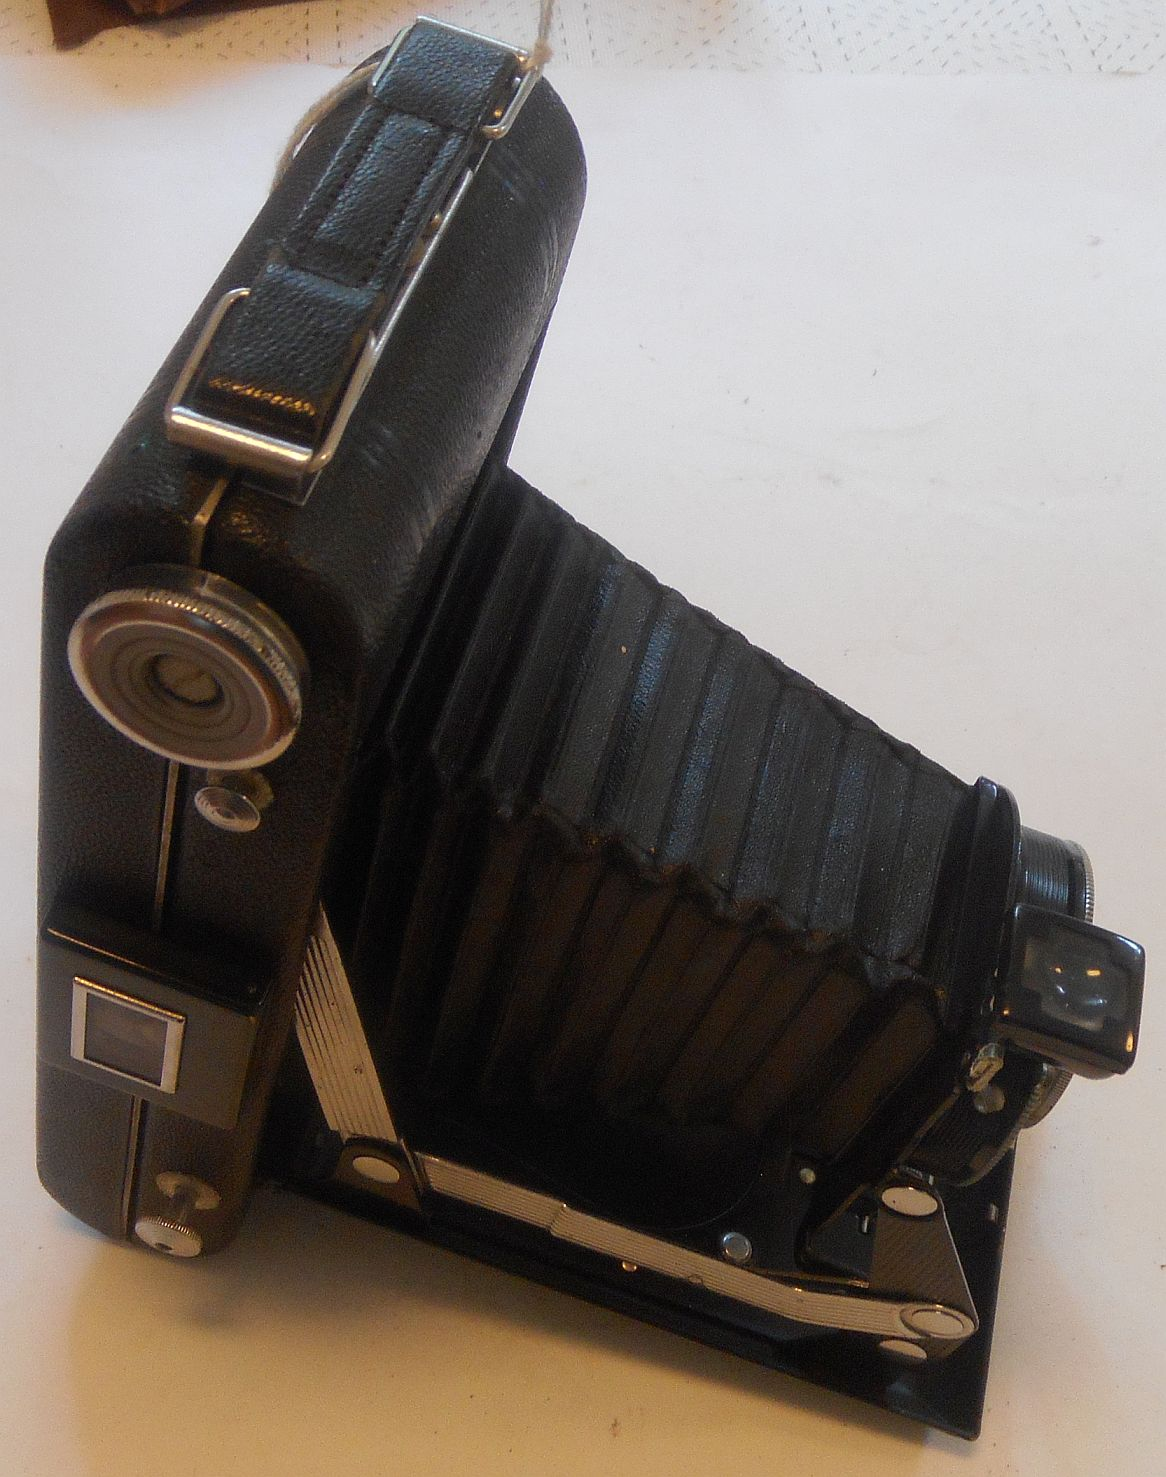 Kodak No.1 - Diomatic